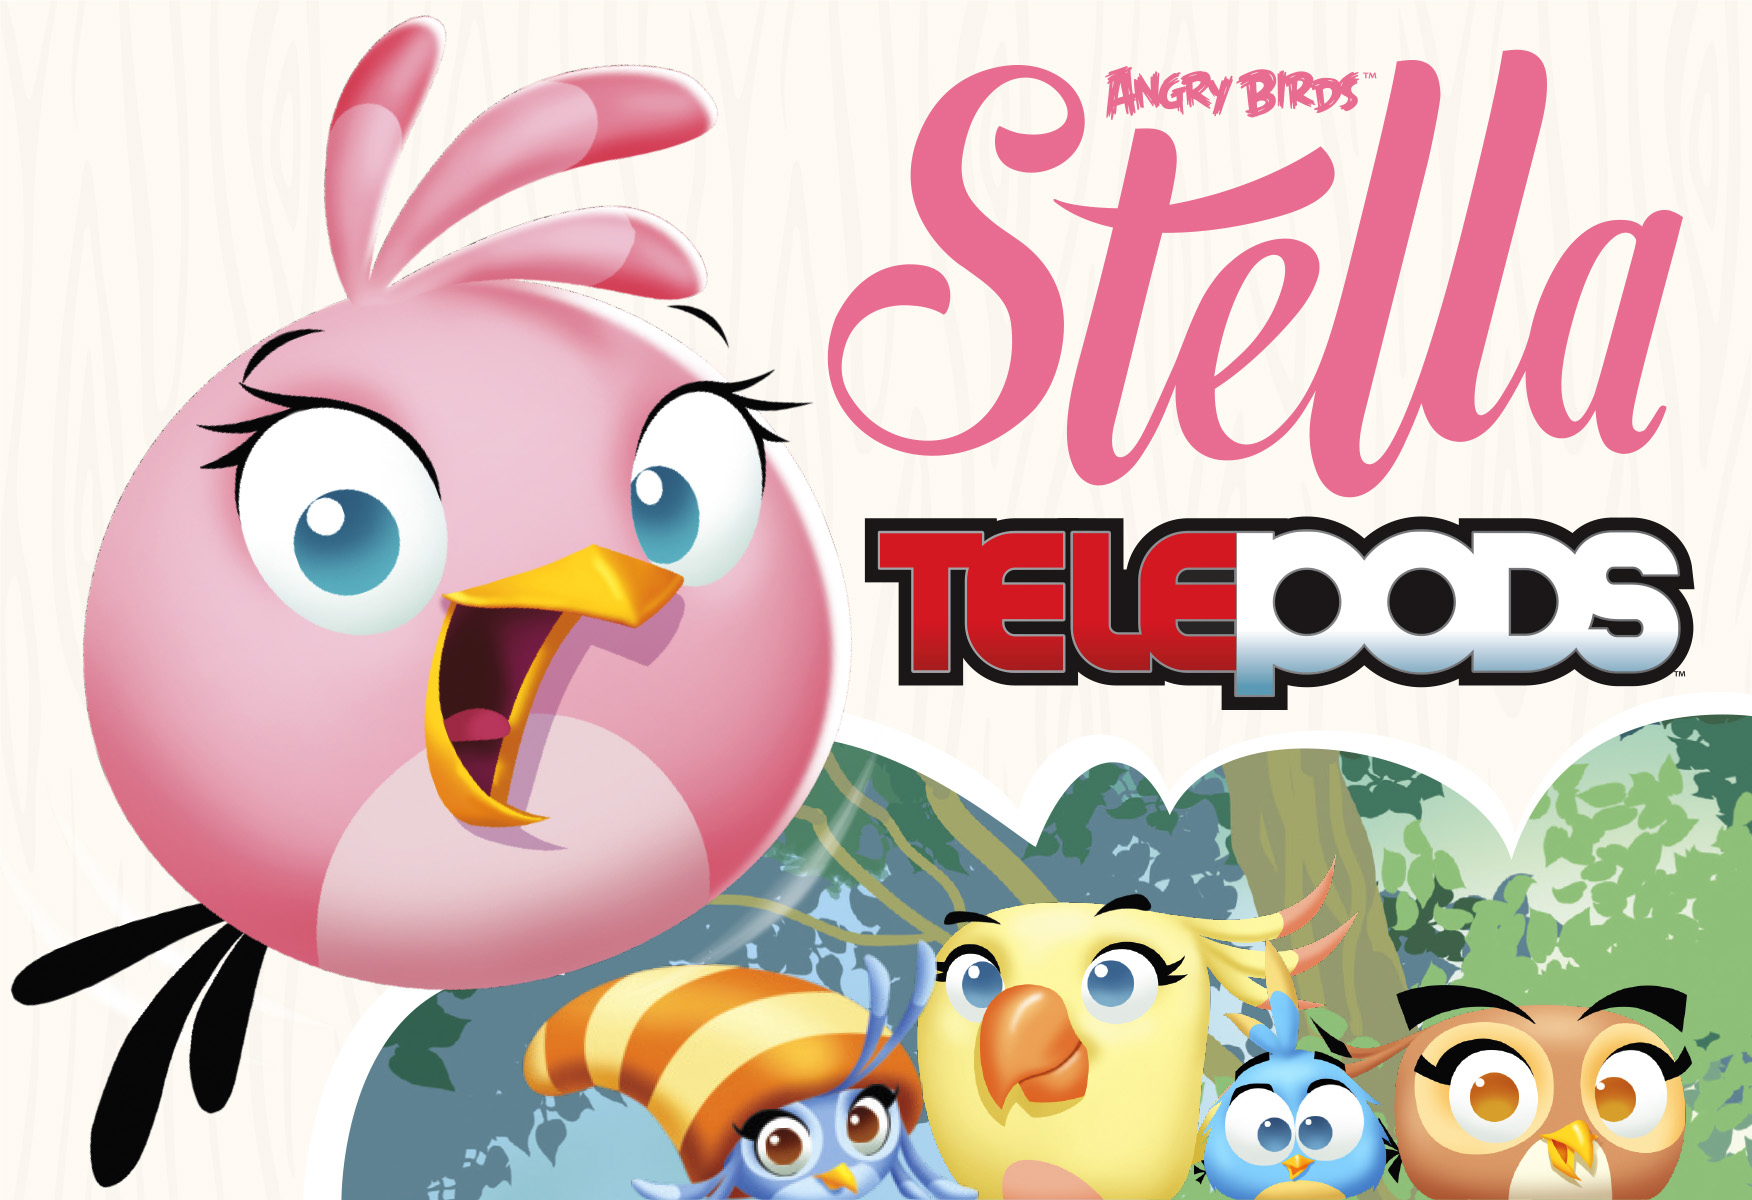 Hasbro Announces New ANGRY BIRDS™ STELLA TELEPODS™ Line Based on the